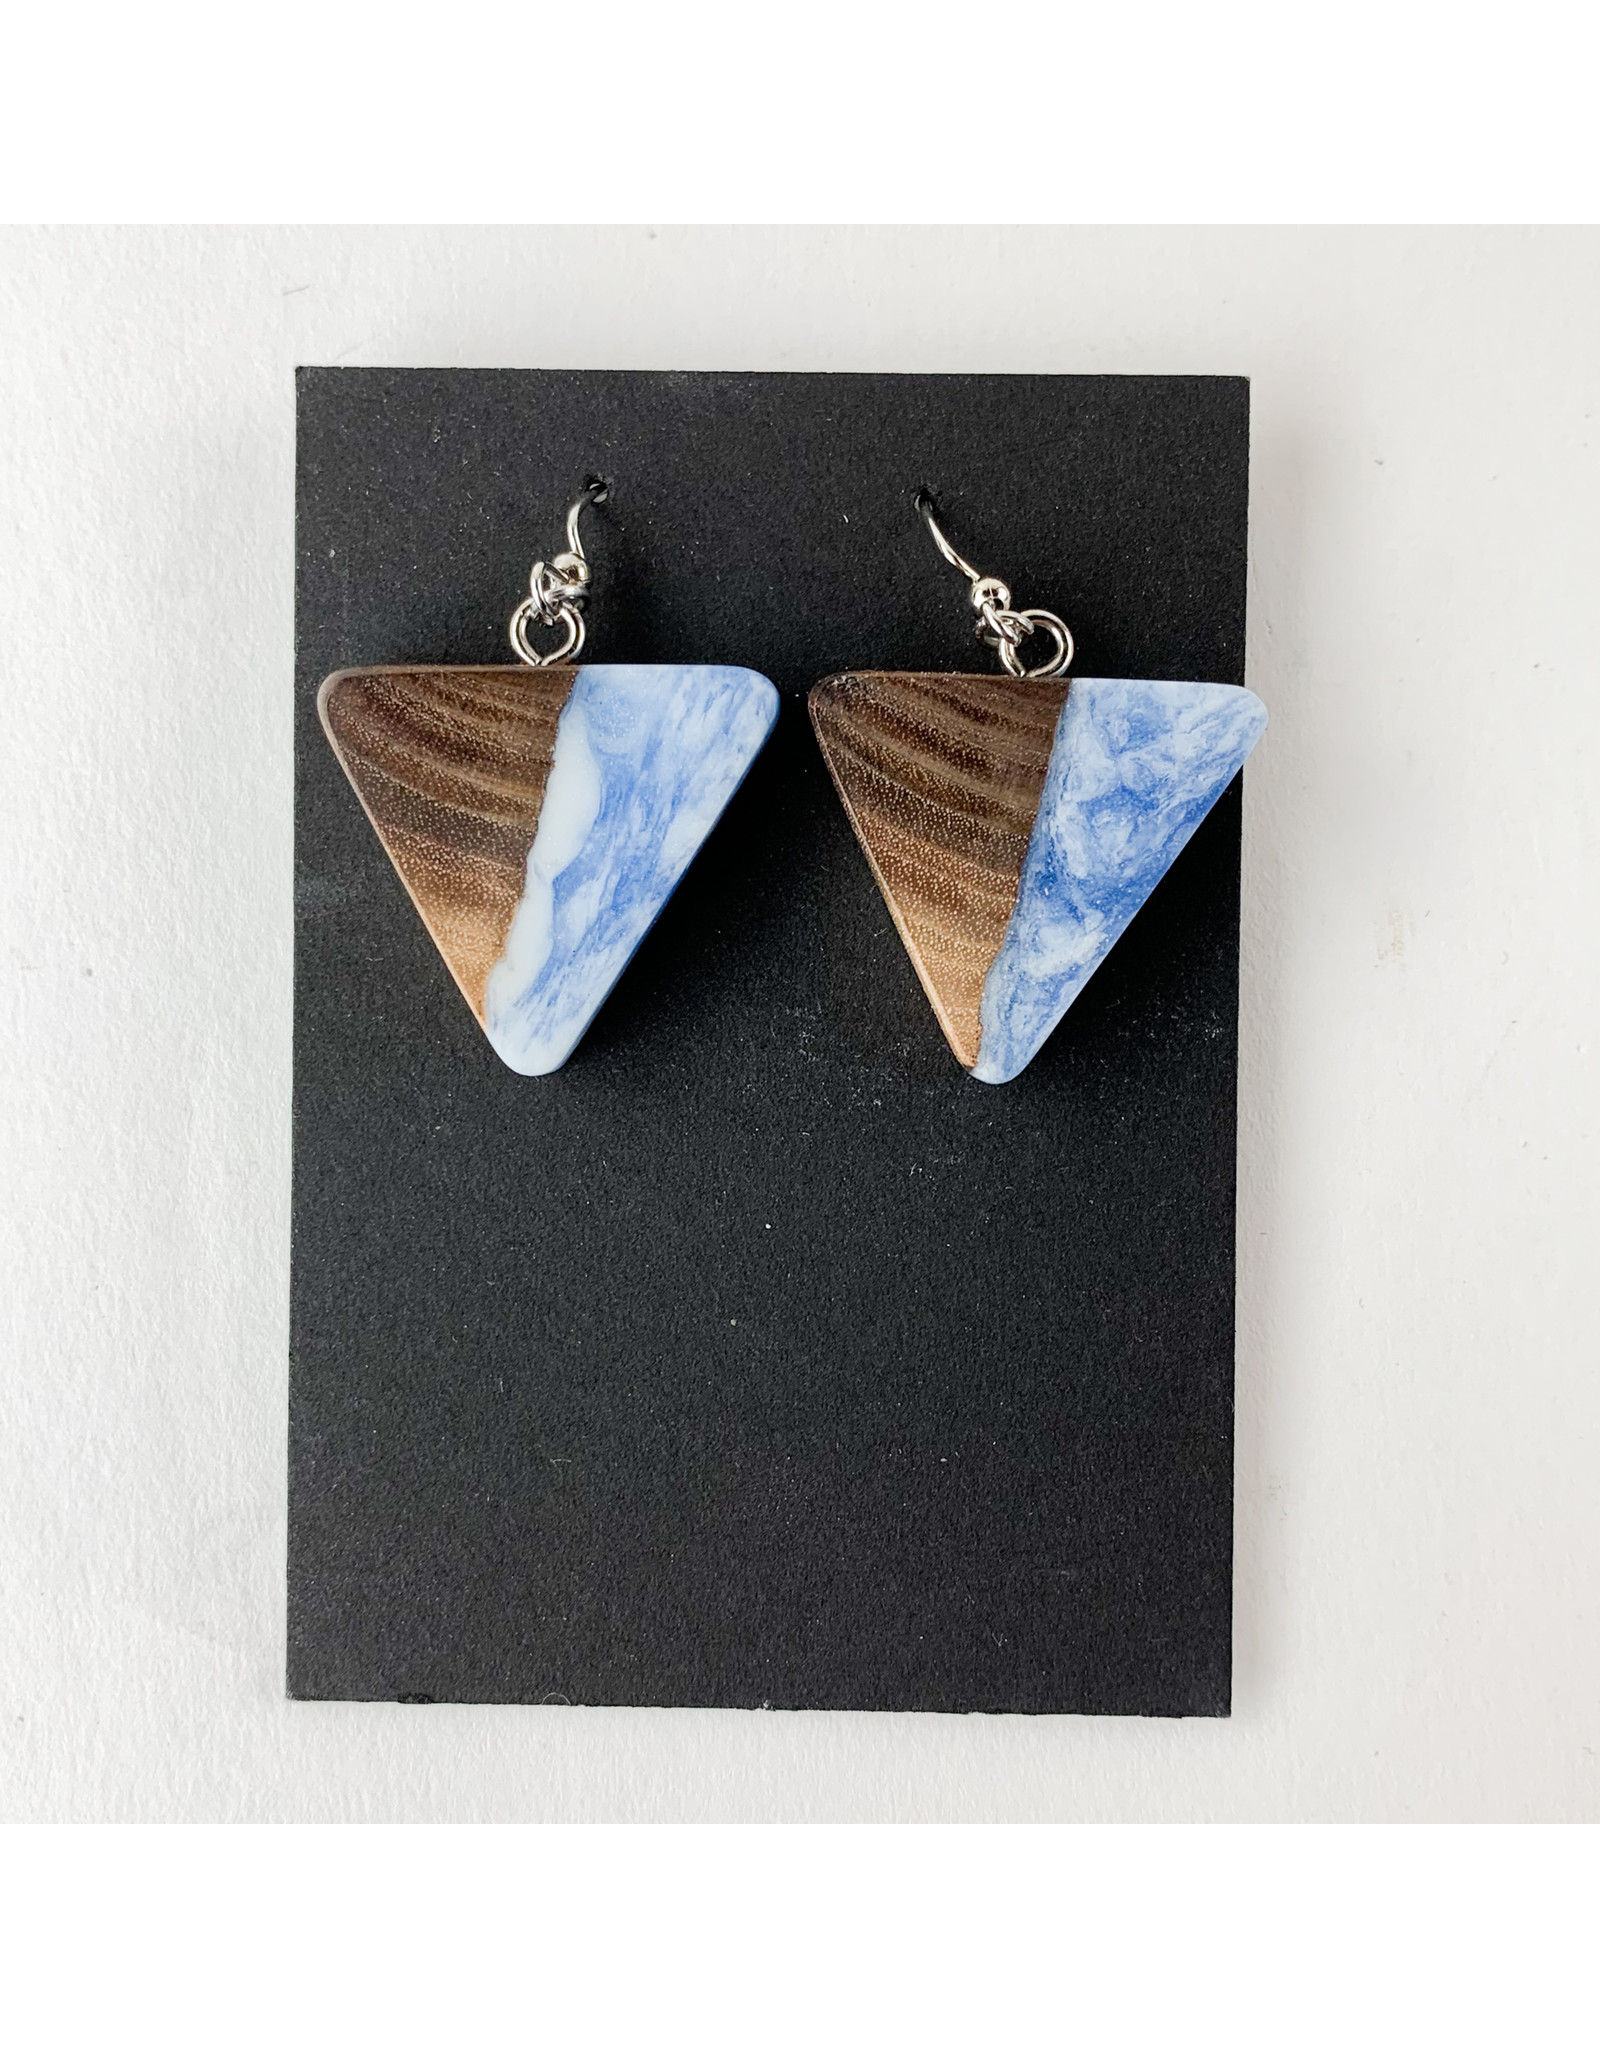 PM Design - Consignment Hooks Consignment Blue Triangles